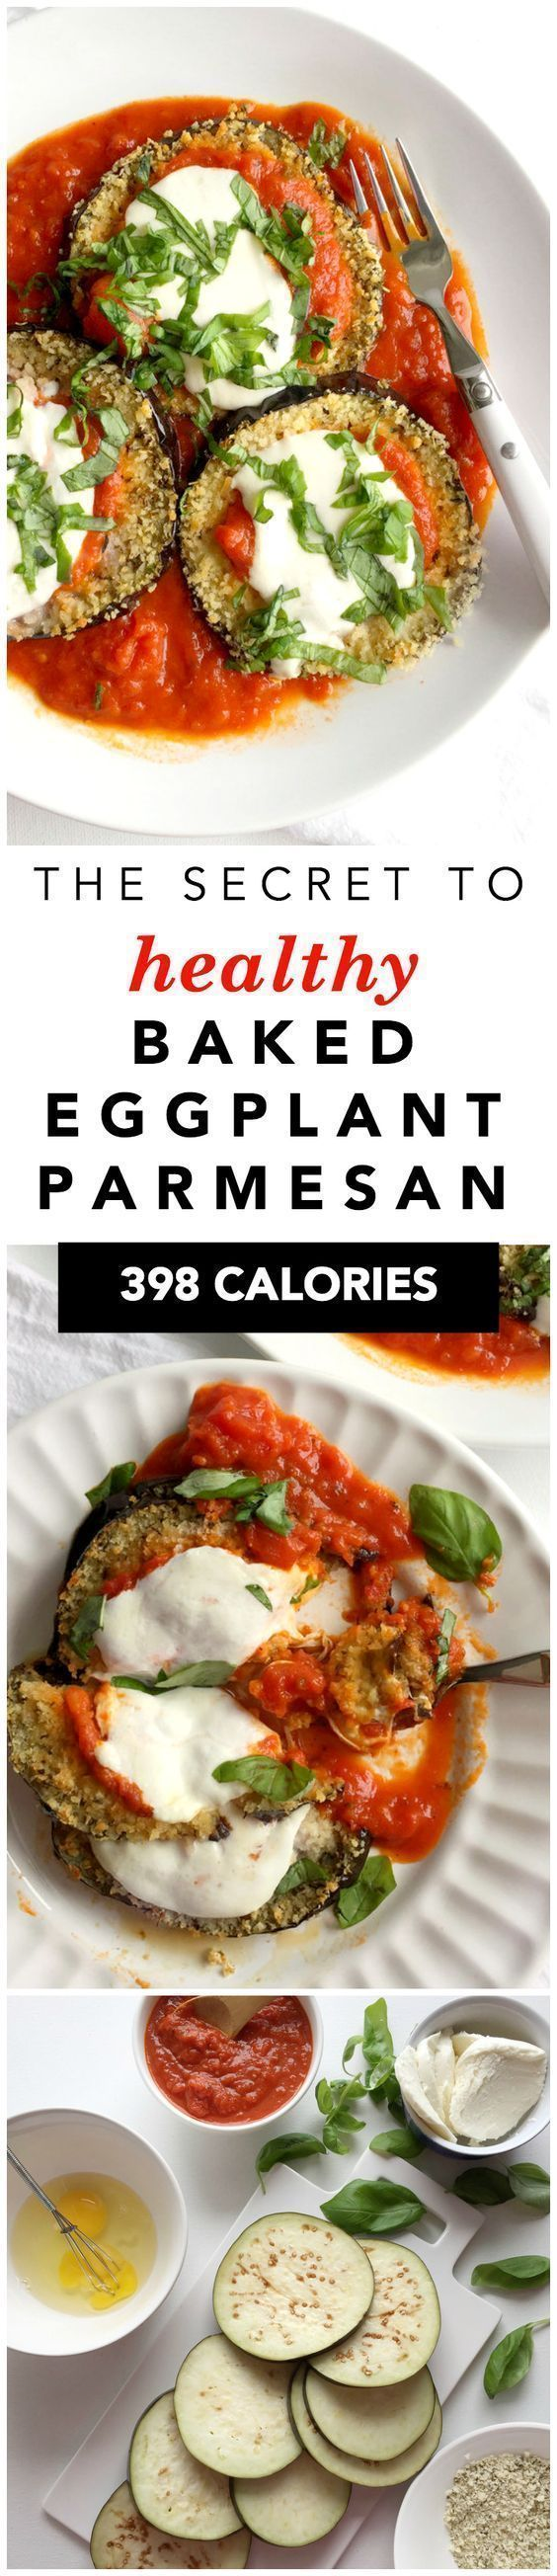 Healthy Baked Eggplant Parmesan Recipe! The secrets on how to make healthy baked eggplant parmesan recipe with panko bread crumbs and fresh mozzarella! 398 calories per serving